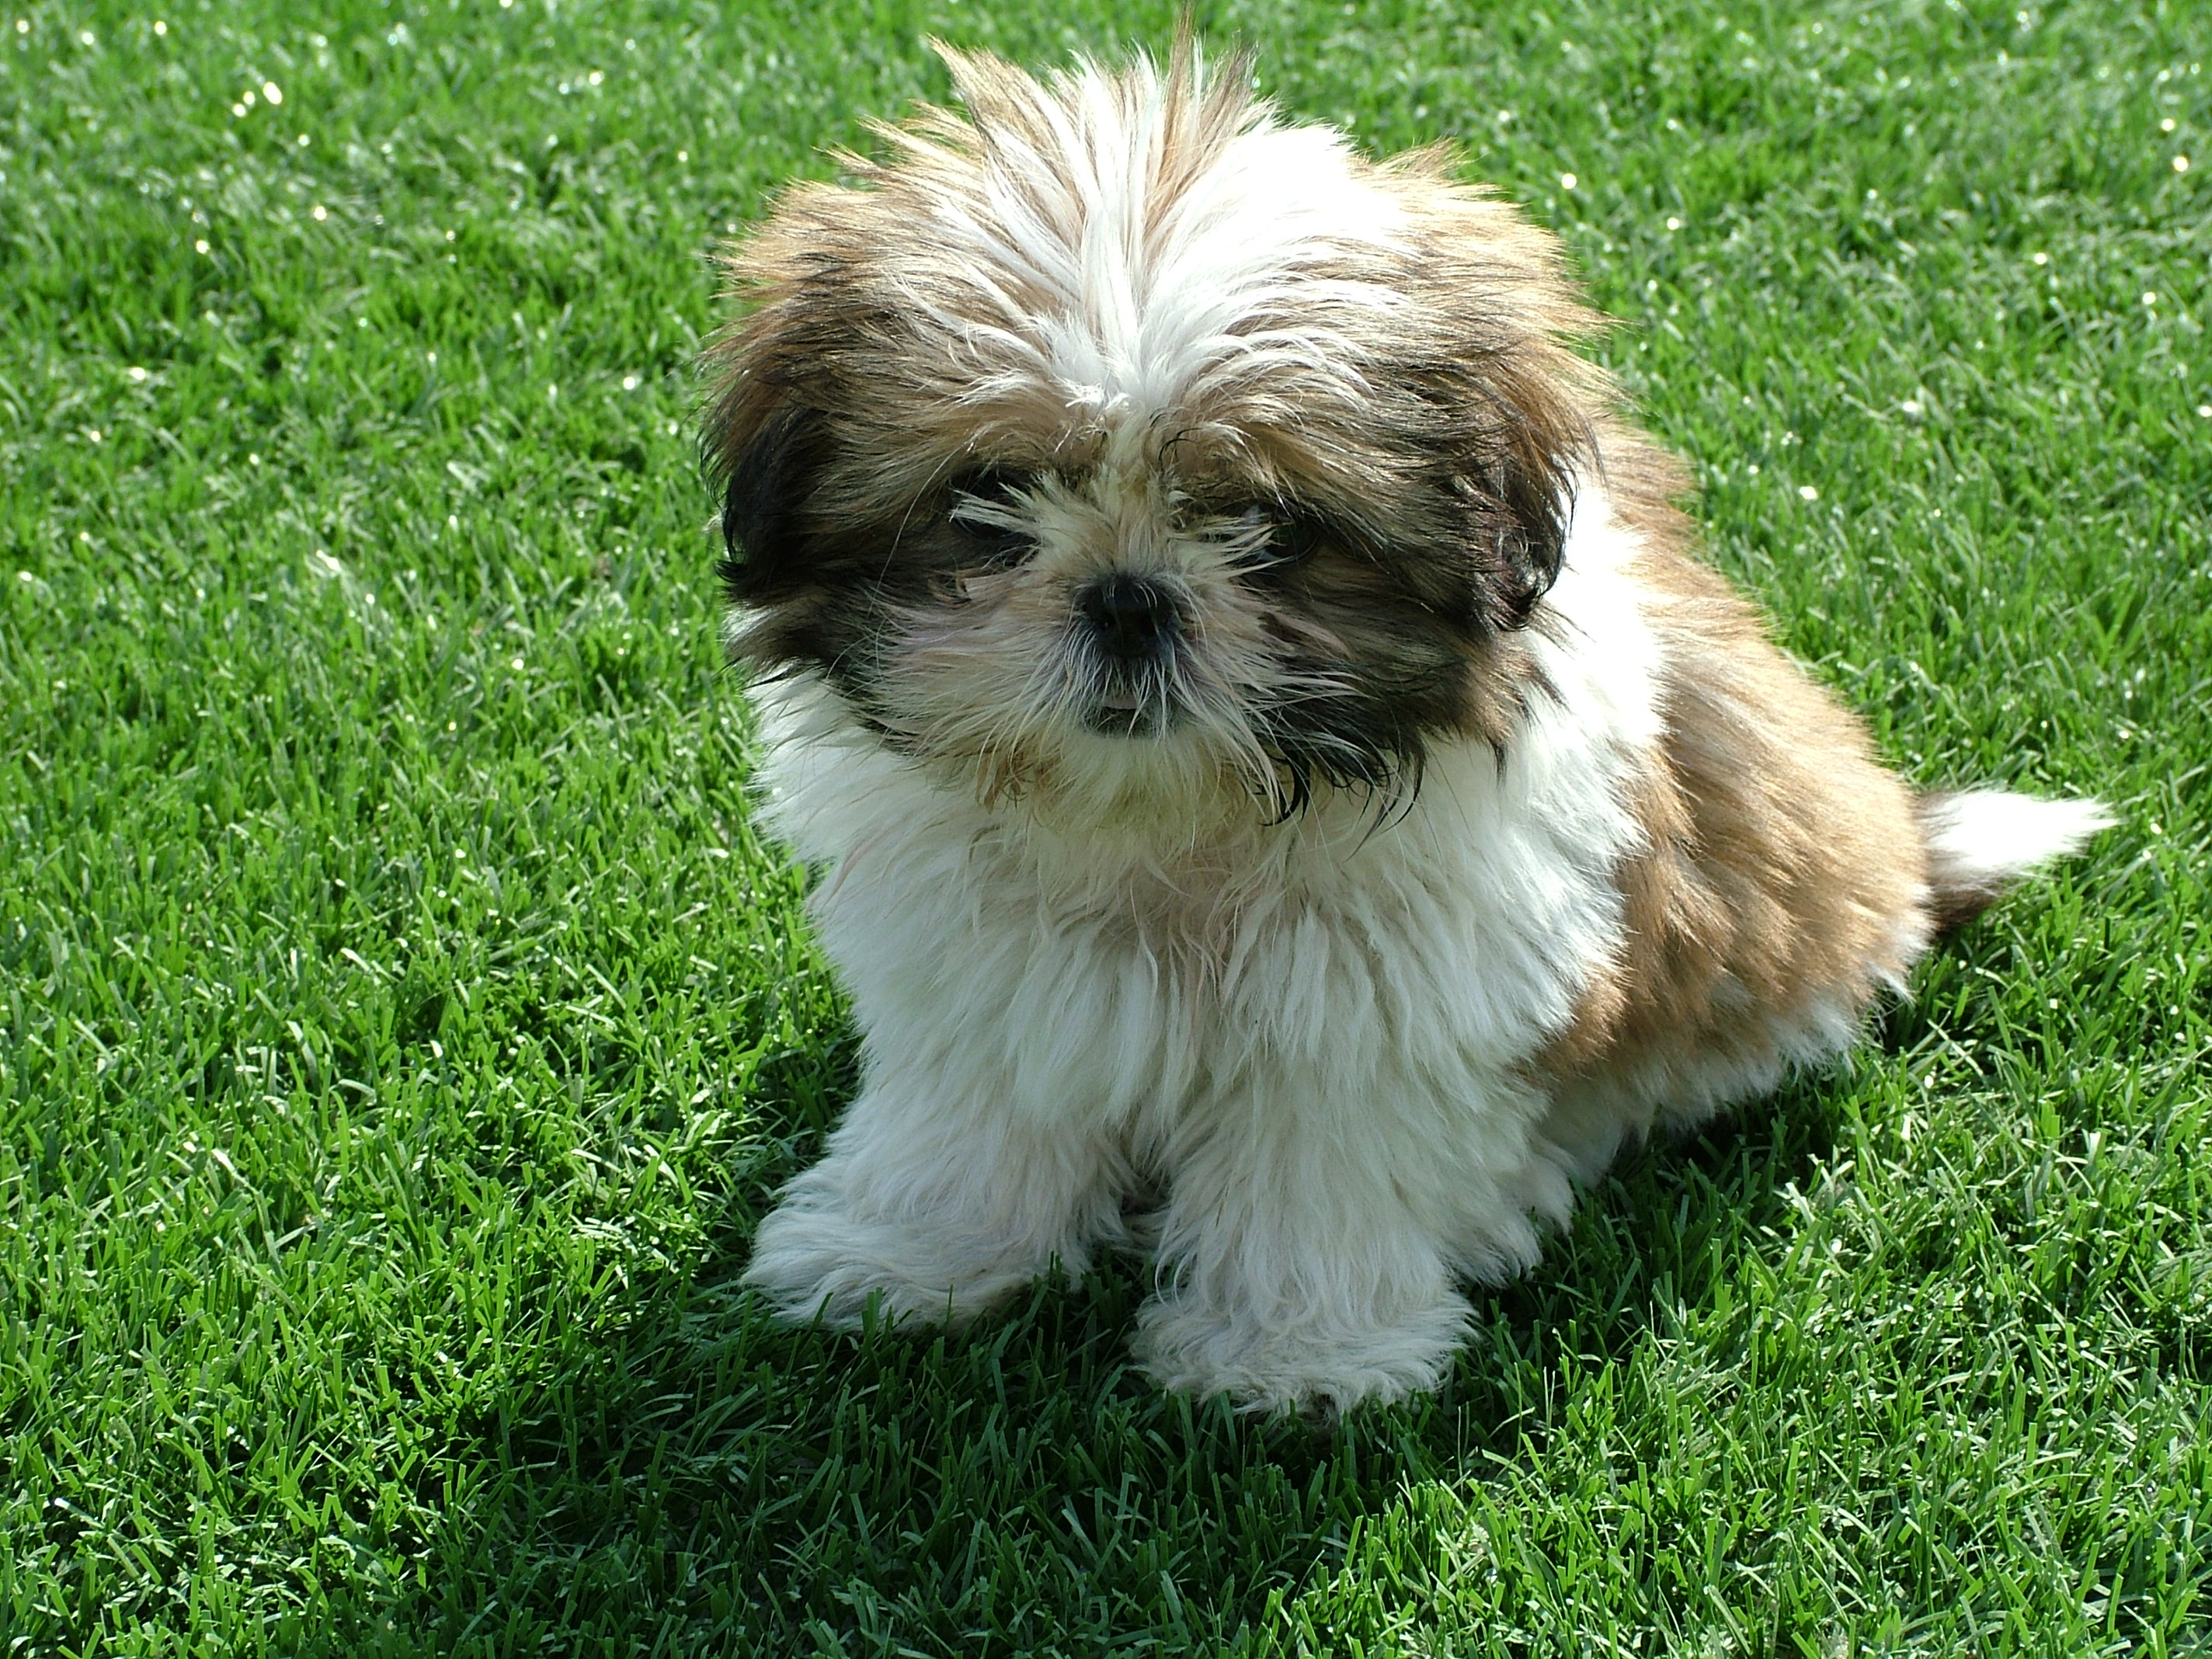 Shih Tzu - Small Dog Breeds